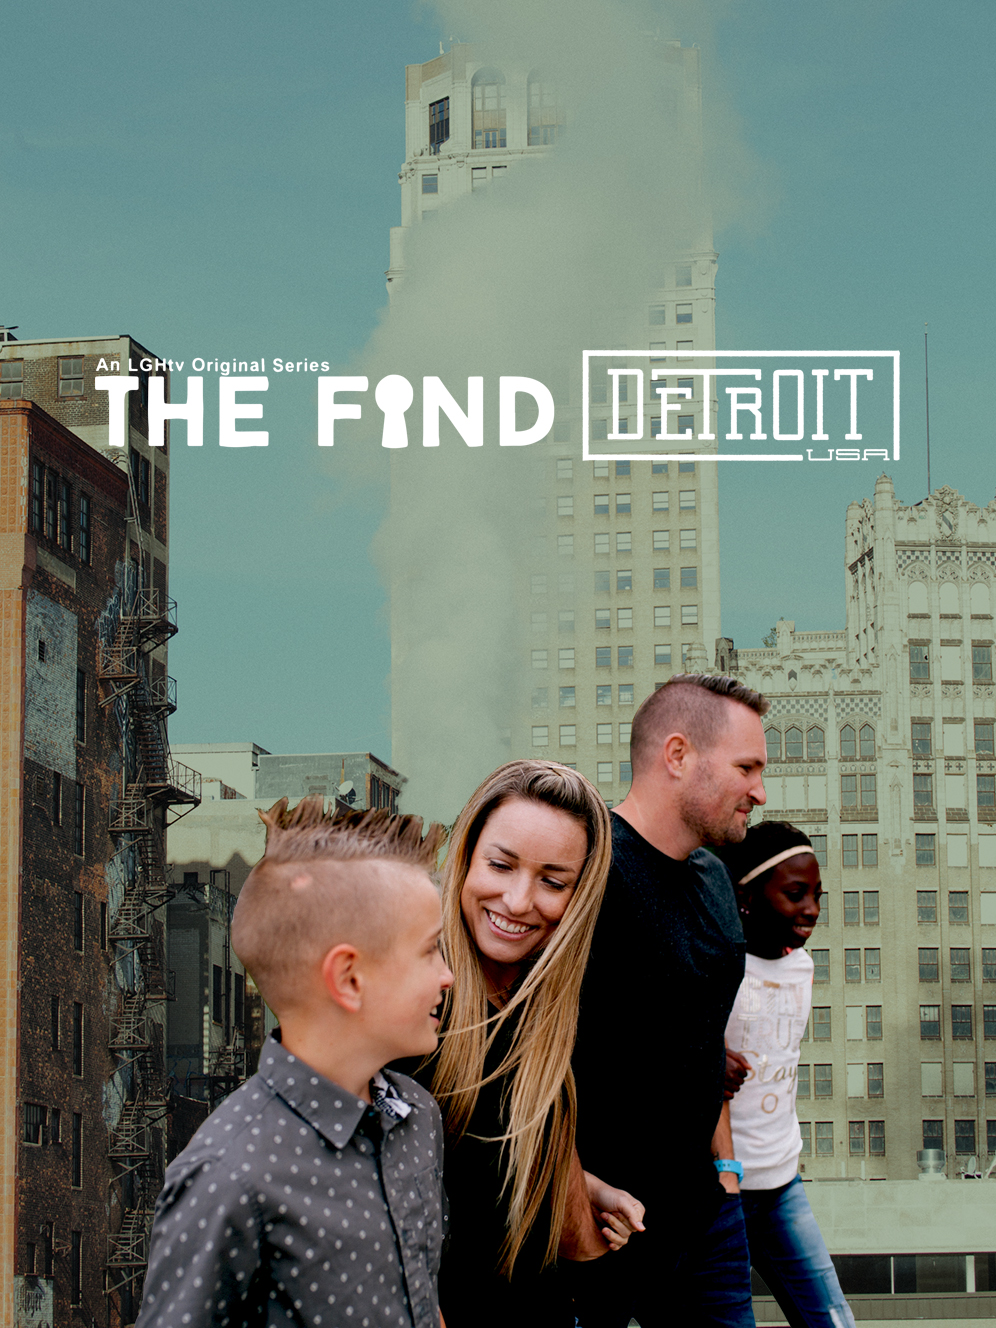 The FIND: Detroit